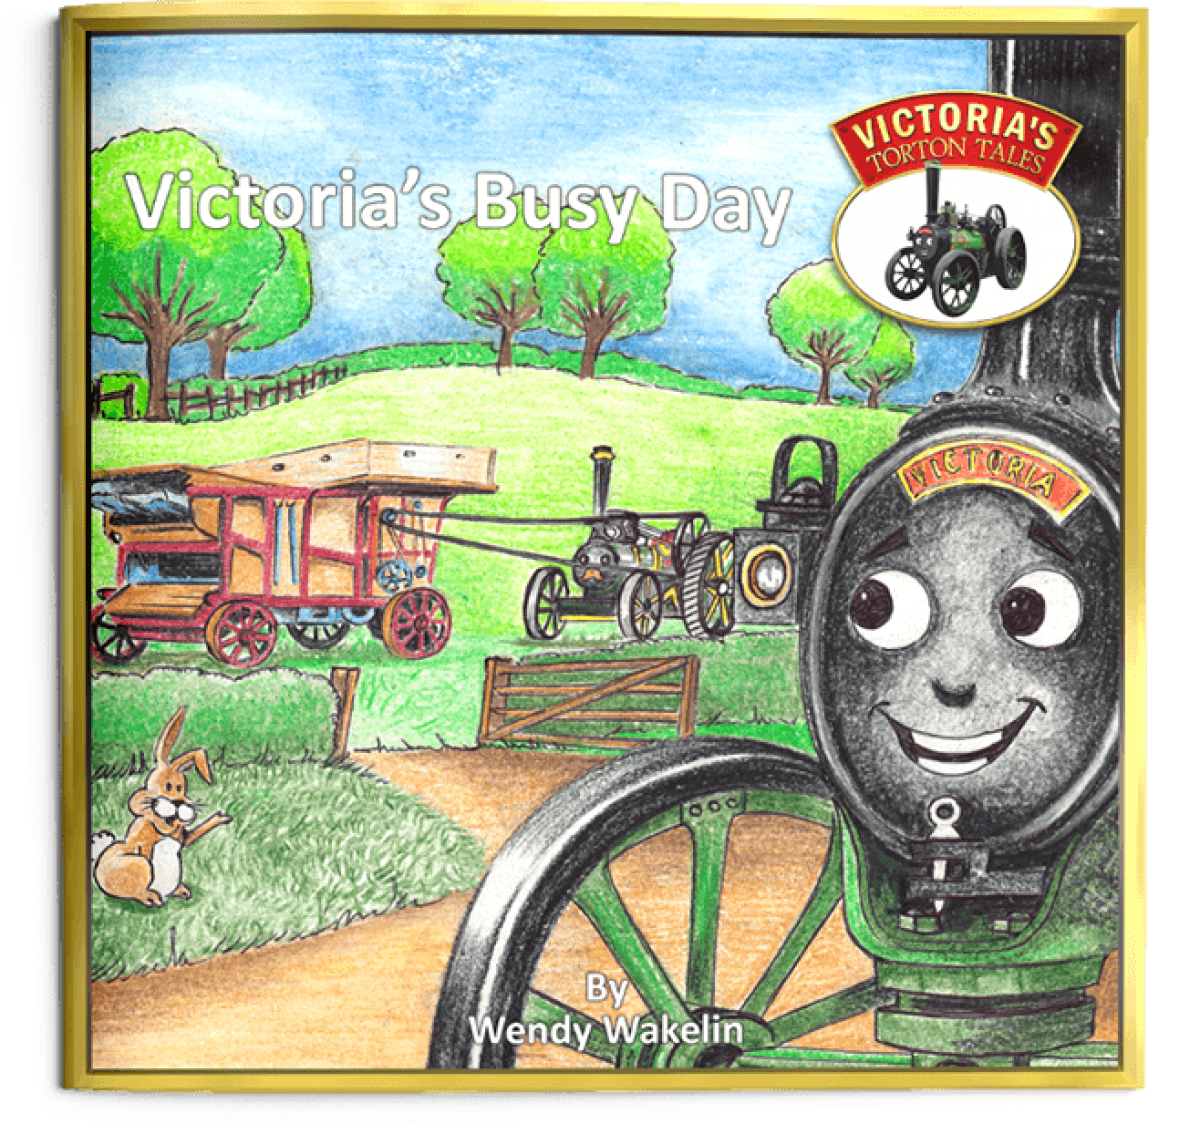 victorias-busy-day-book-cover-photo2